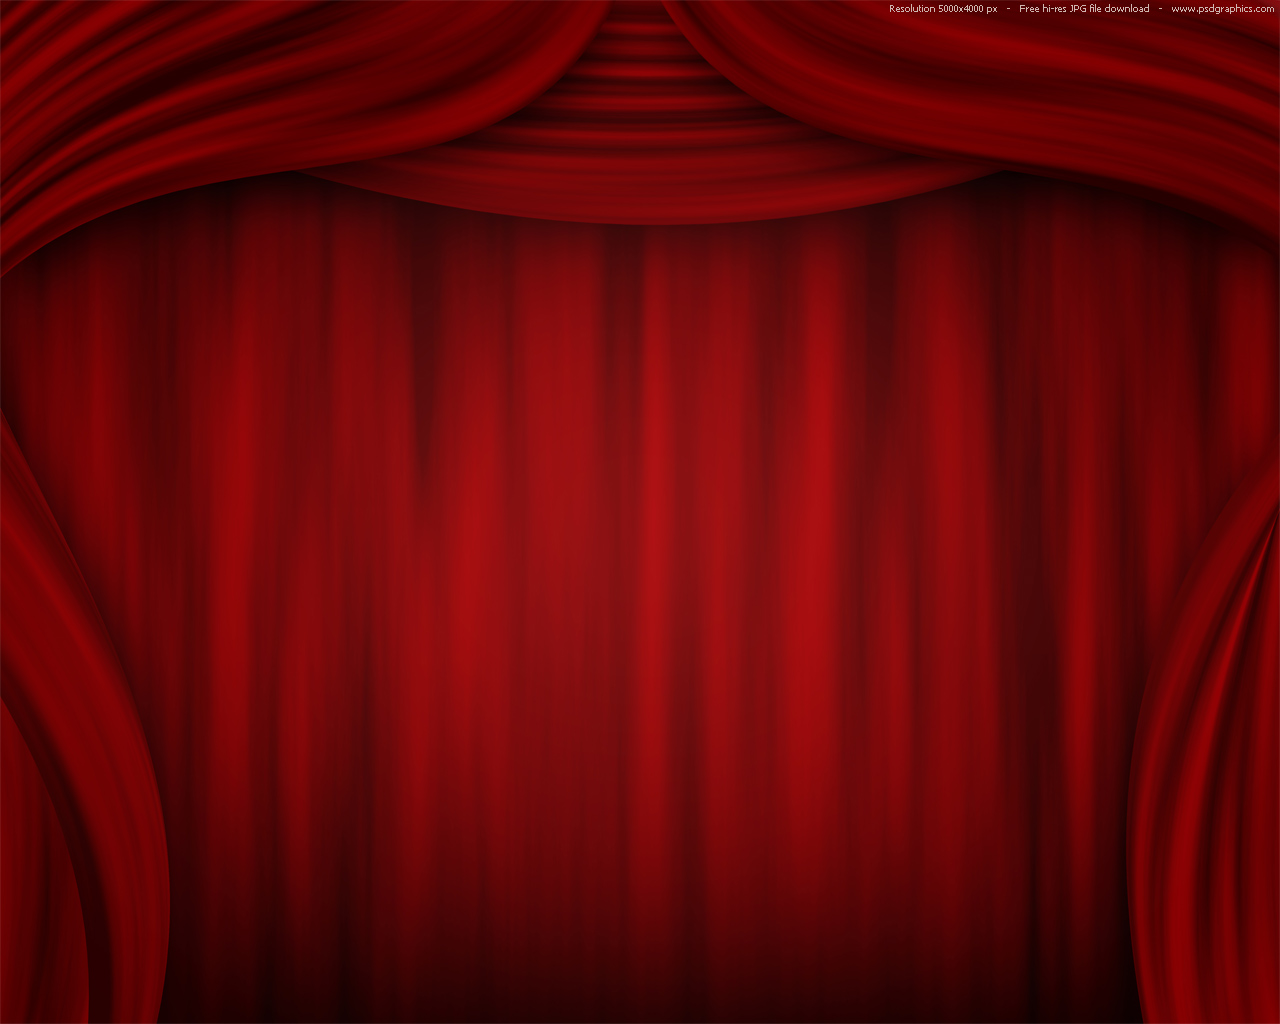 Red curtain background, theatre stage